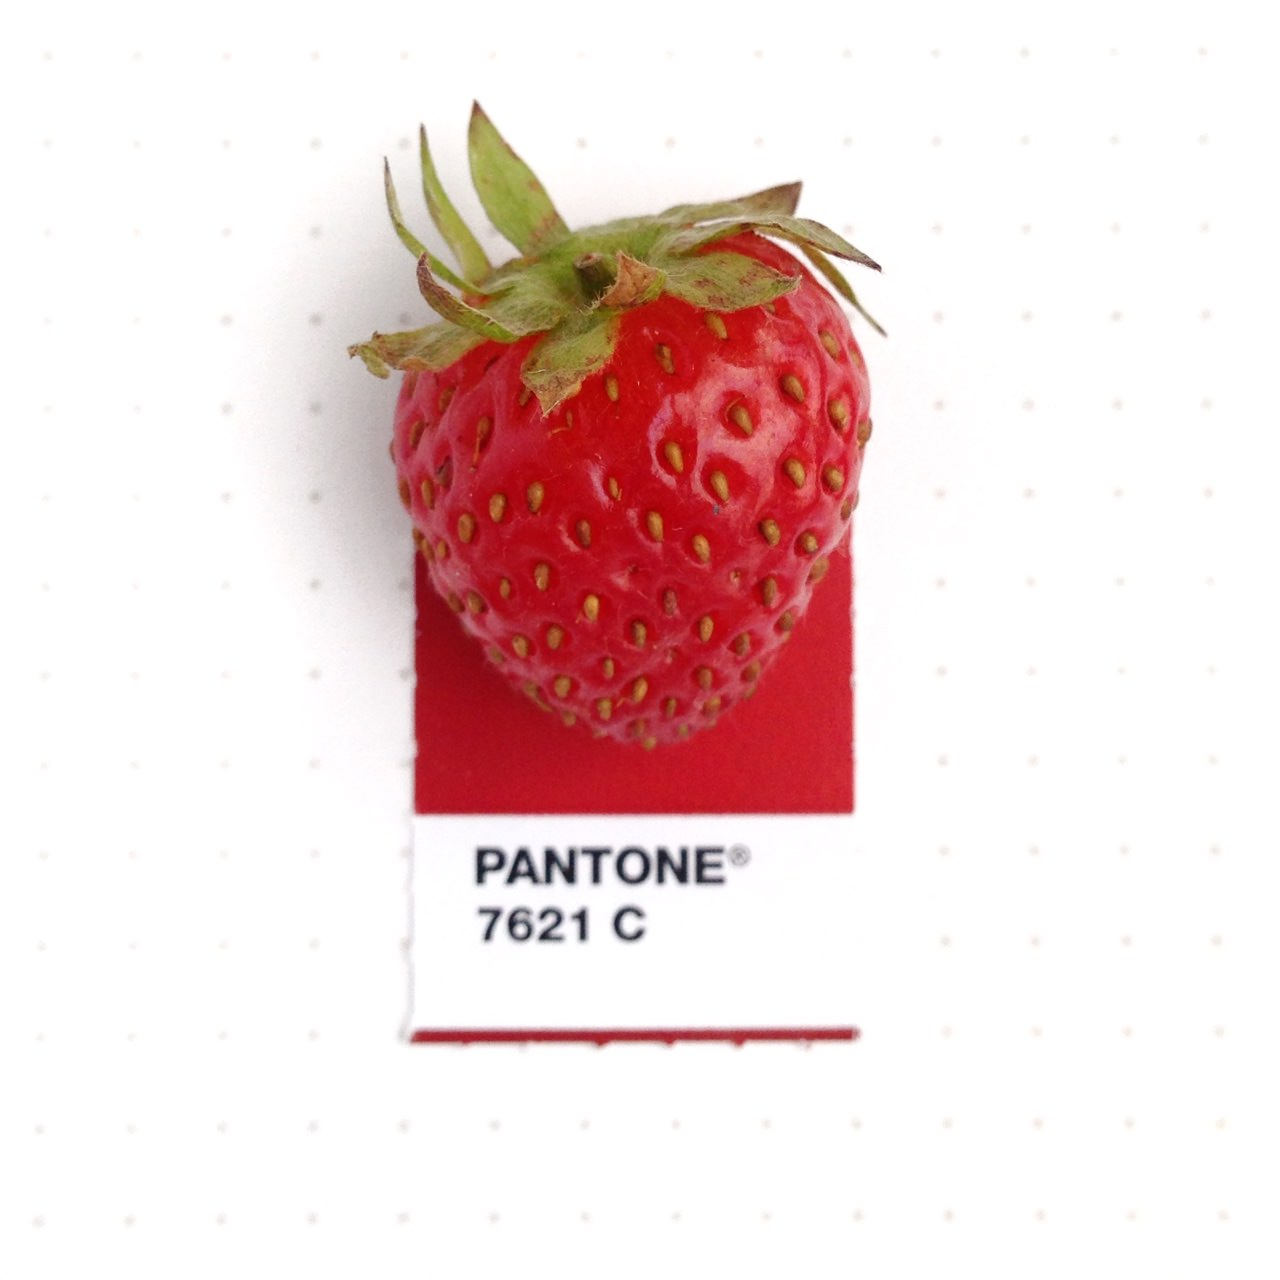 bridging-life-and-design-in-15-pantone-color-matches-04